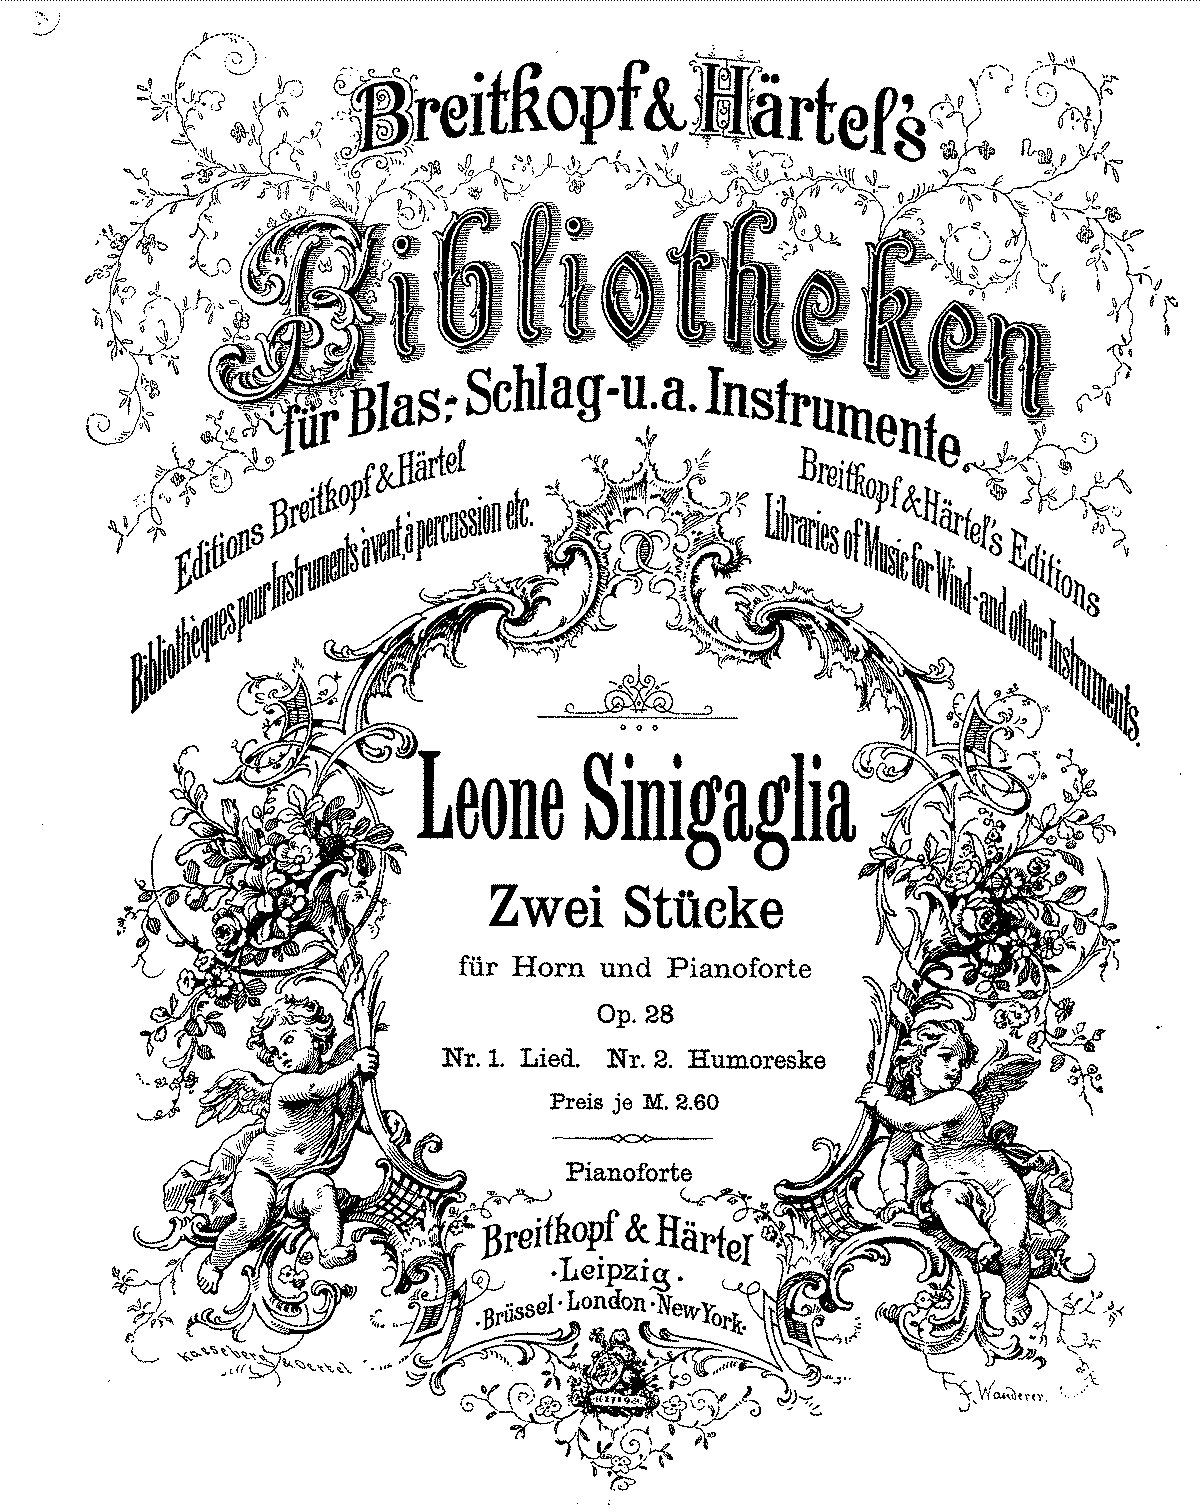 Sinigaglia, Leone - Zwei Stucke for Horn and Piano.pdf